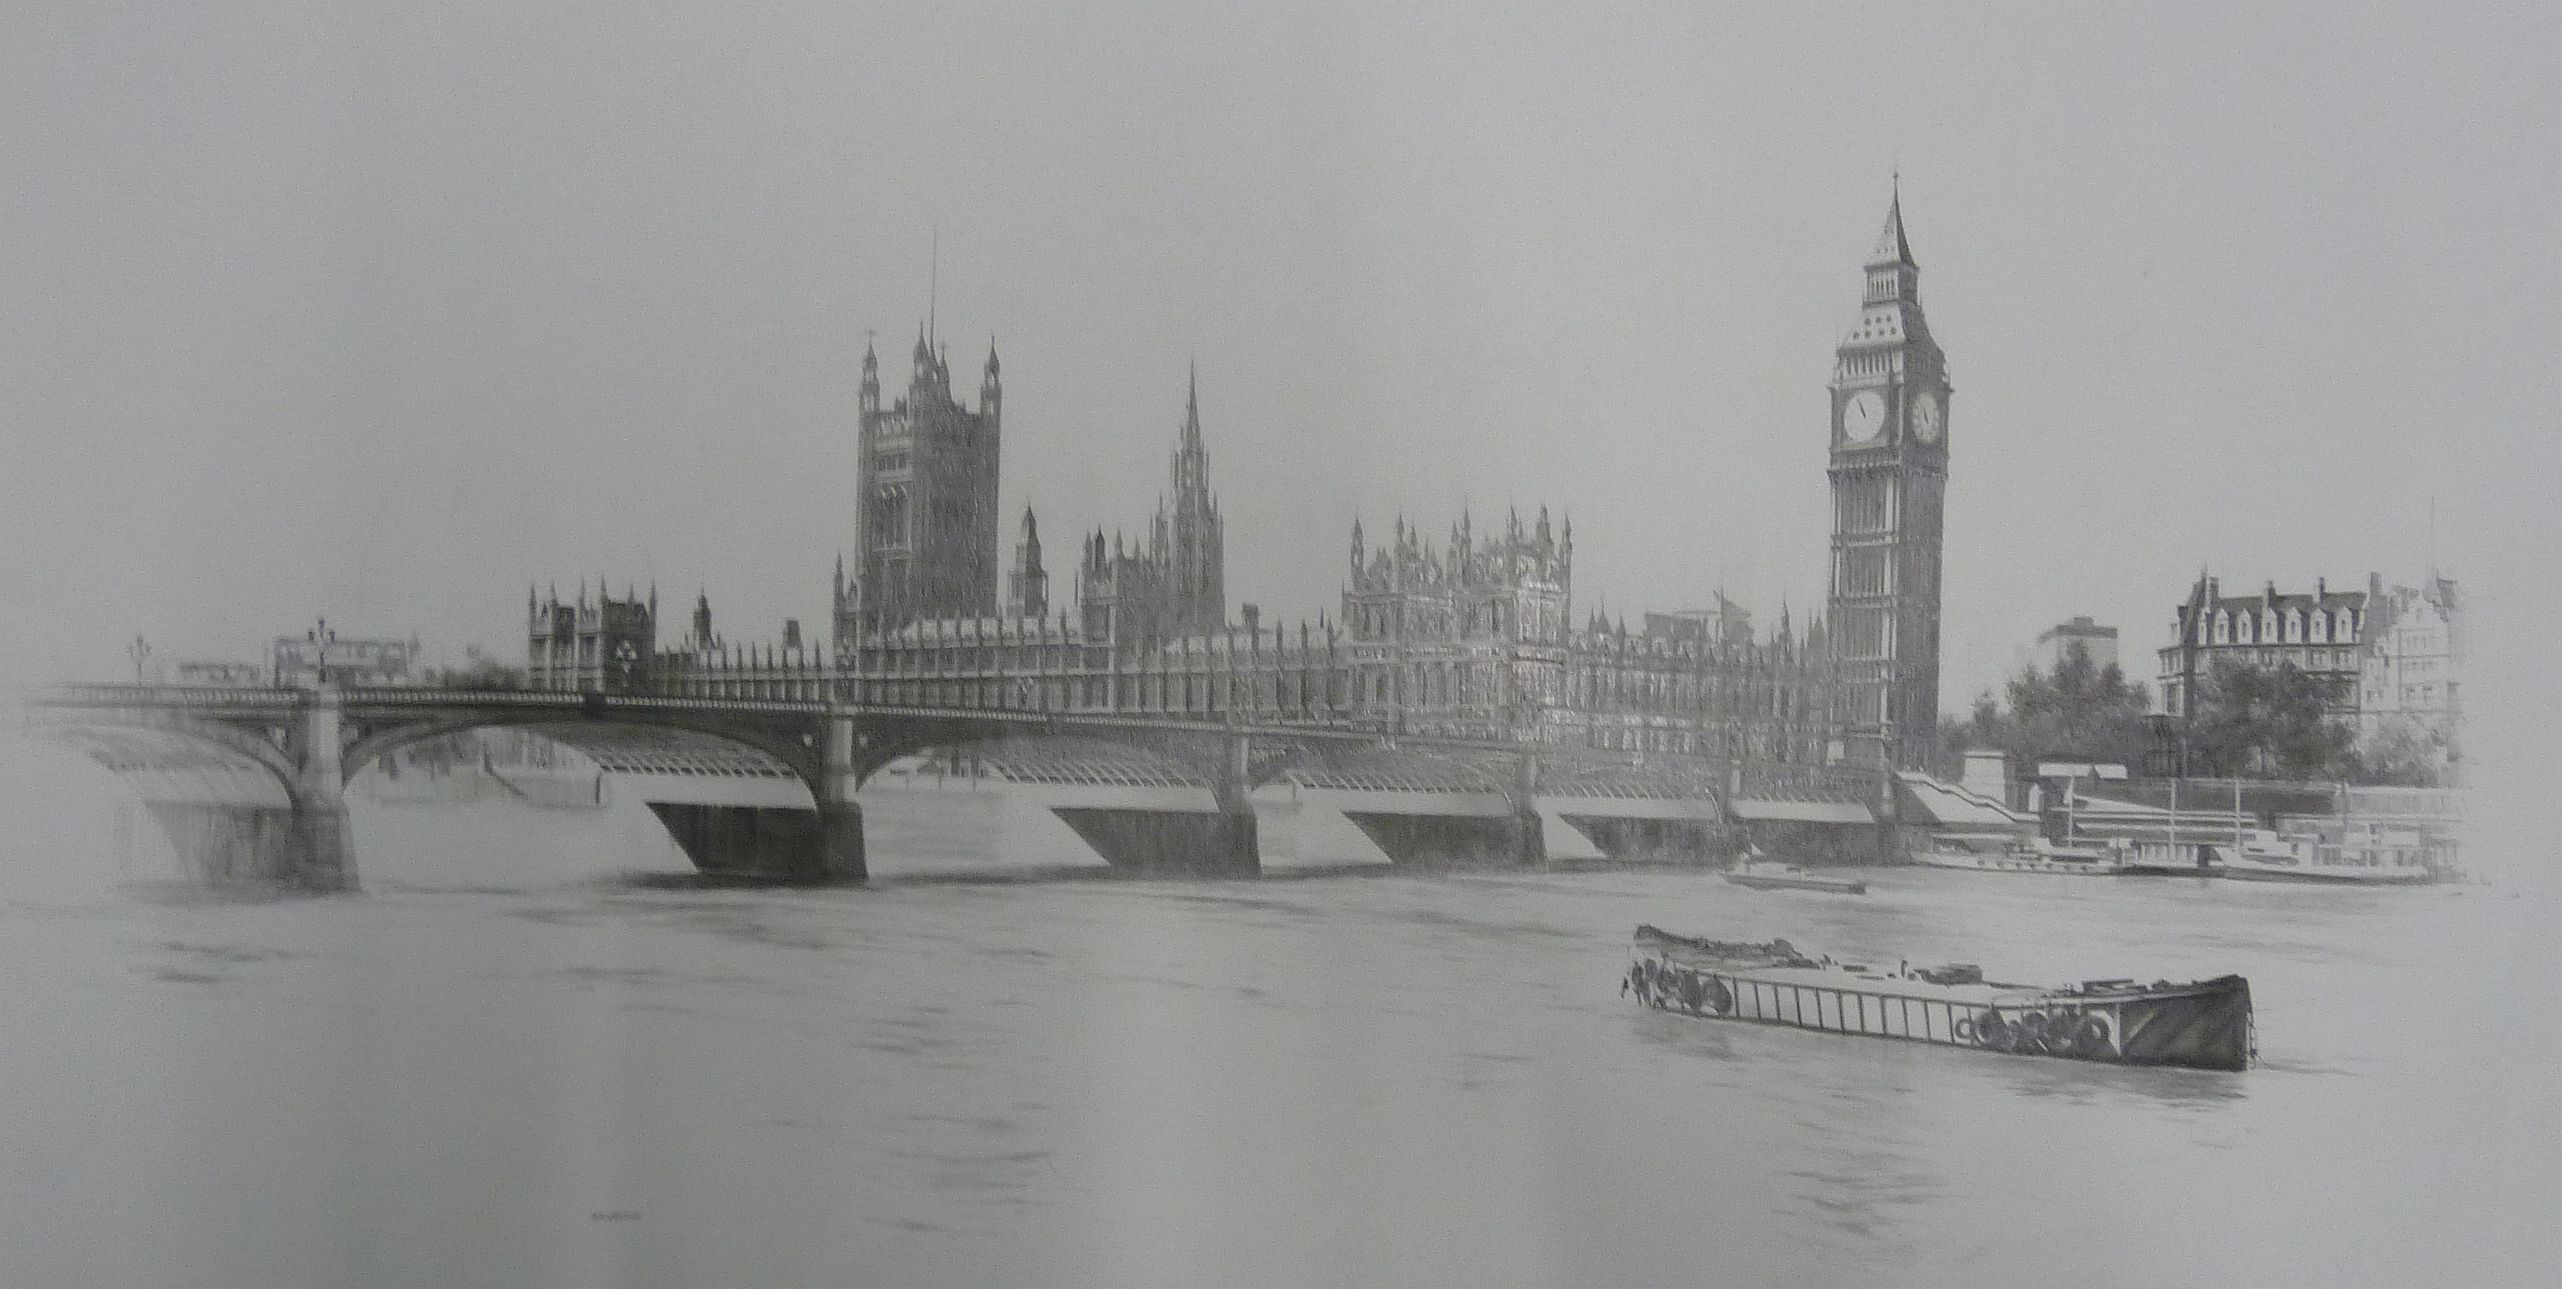 Marc grimshaw b 1957 pencil drawing big ben and the palace of